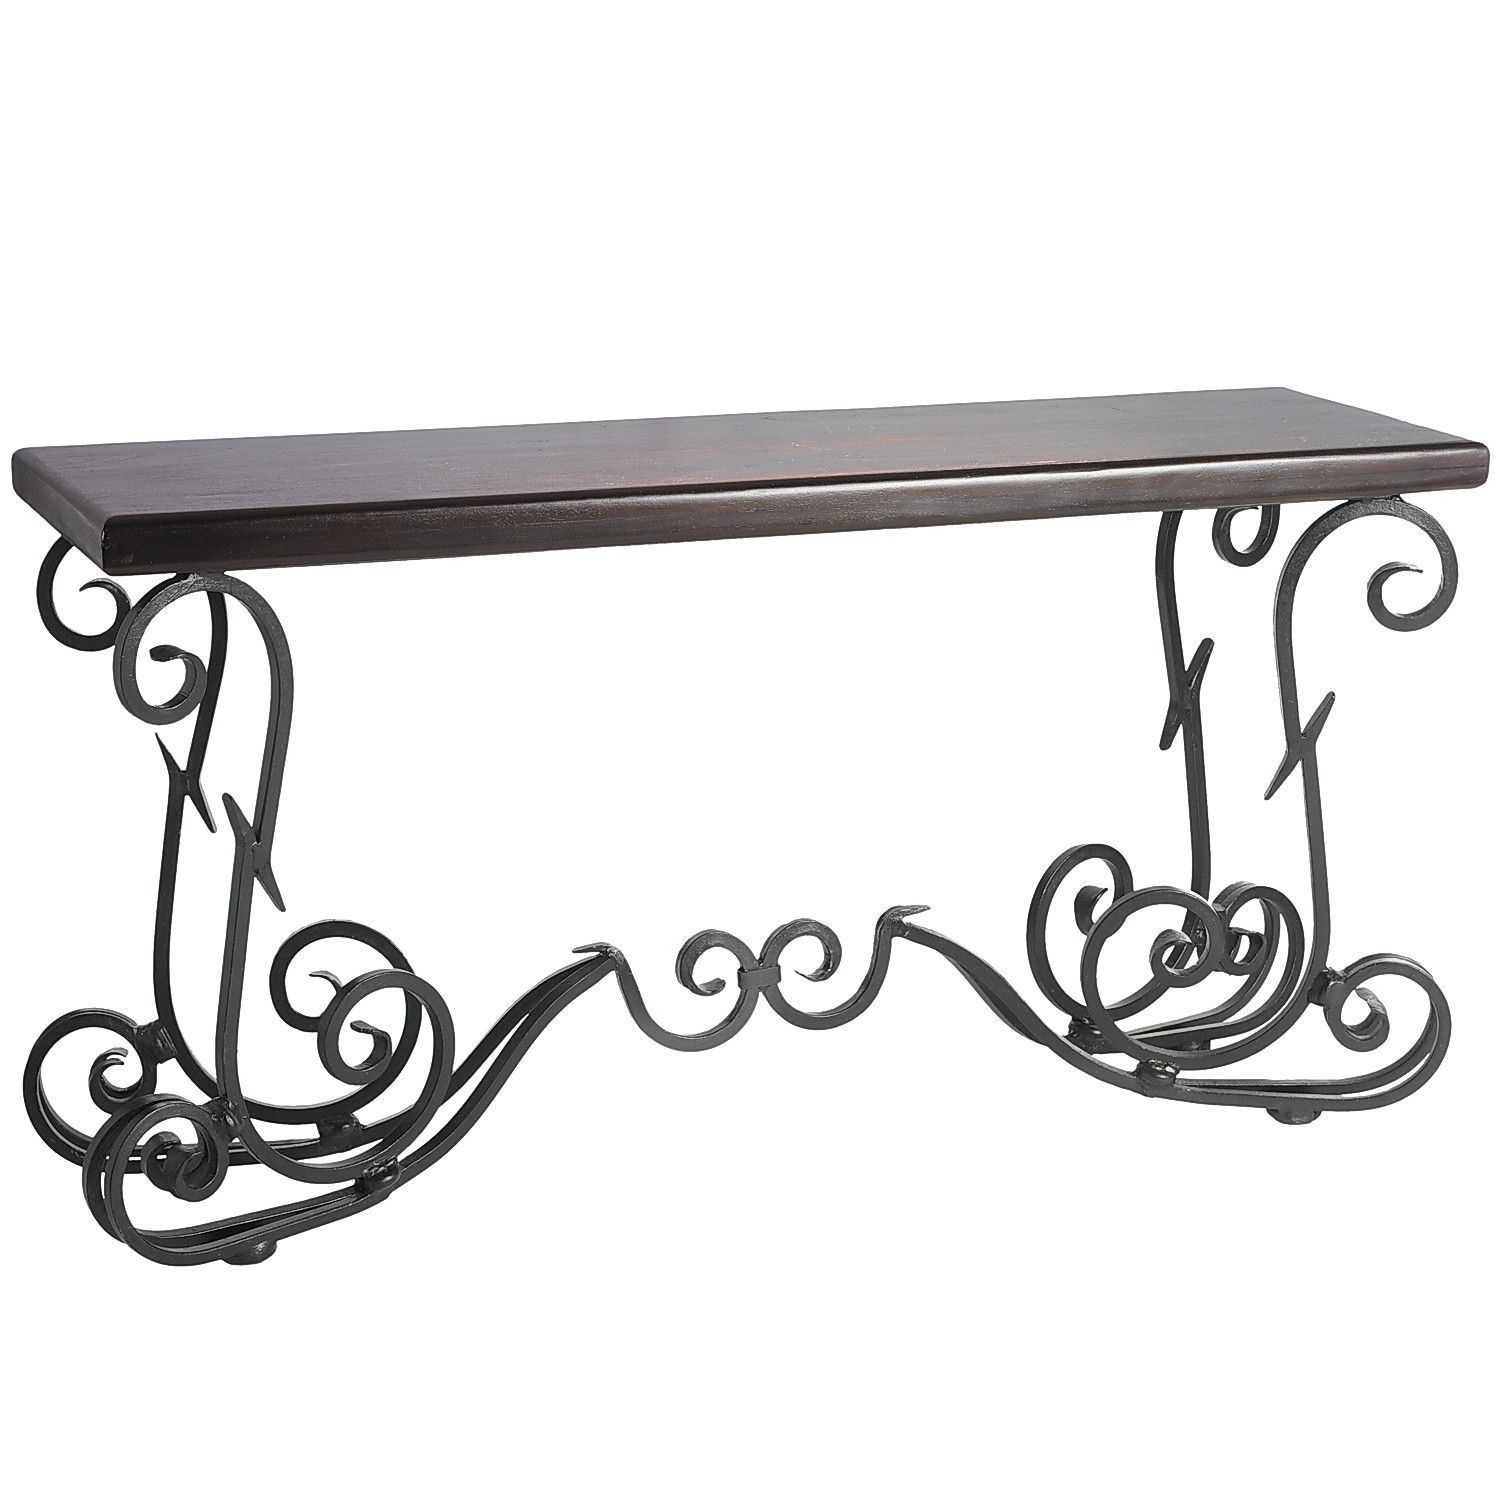 Magnificent Quentin Console Table Pier 1 Imports Formal Living Ncnpc Chair Design For Home Ncnpcorg